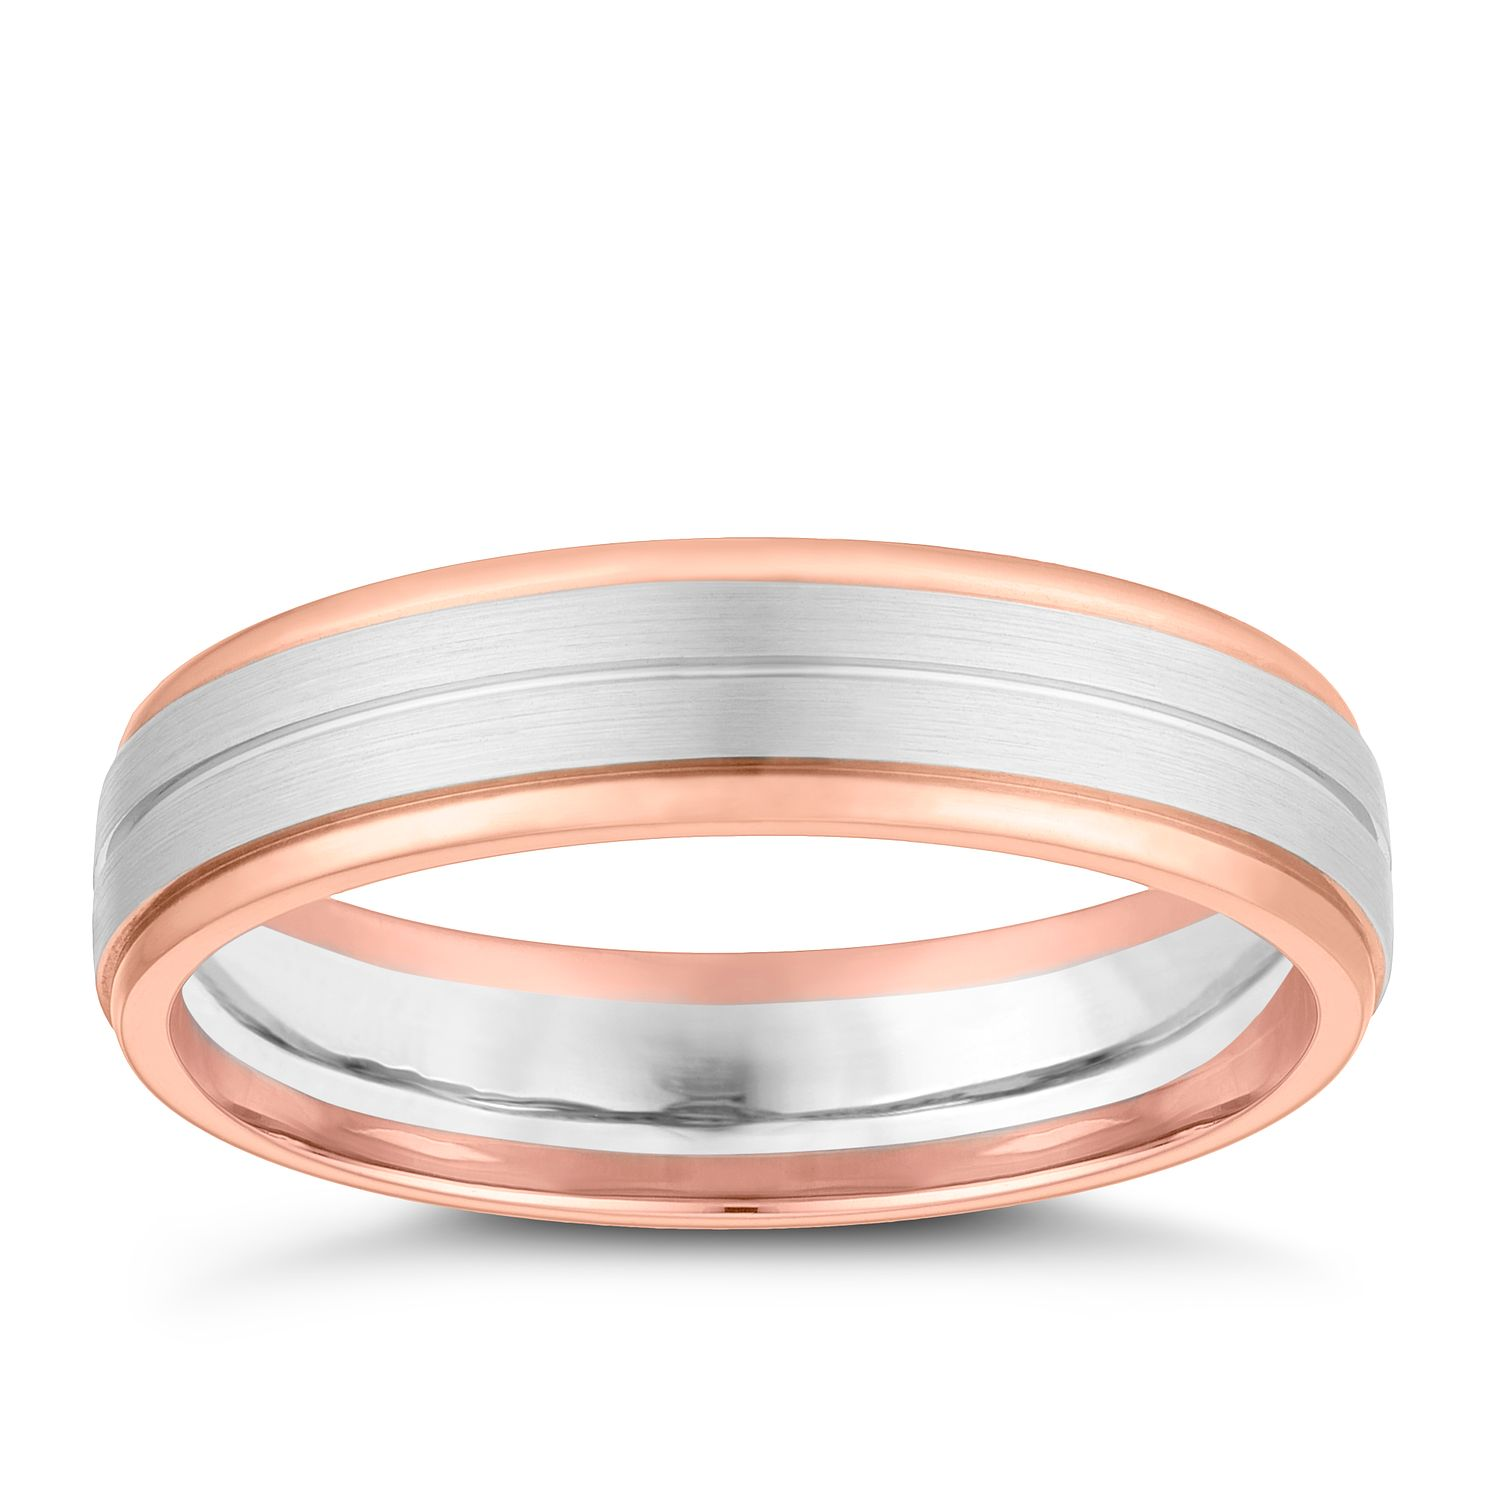 Palladium & 9ct Rose Gold 5mm Ring - Product number 4163613